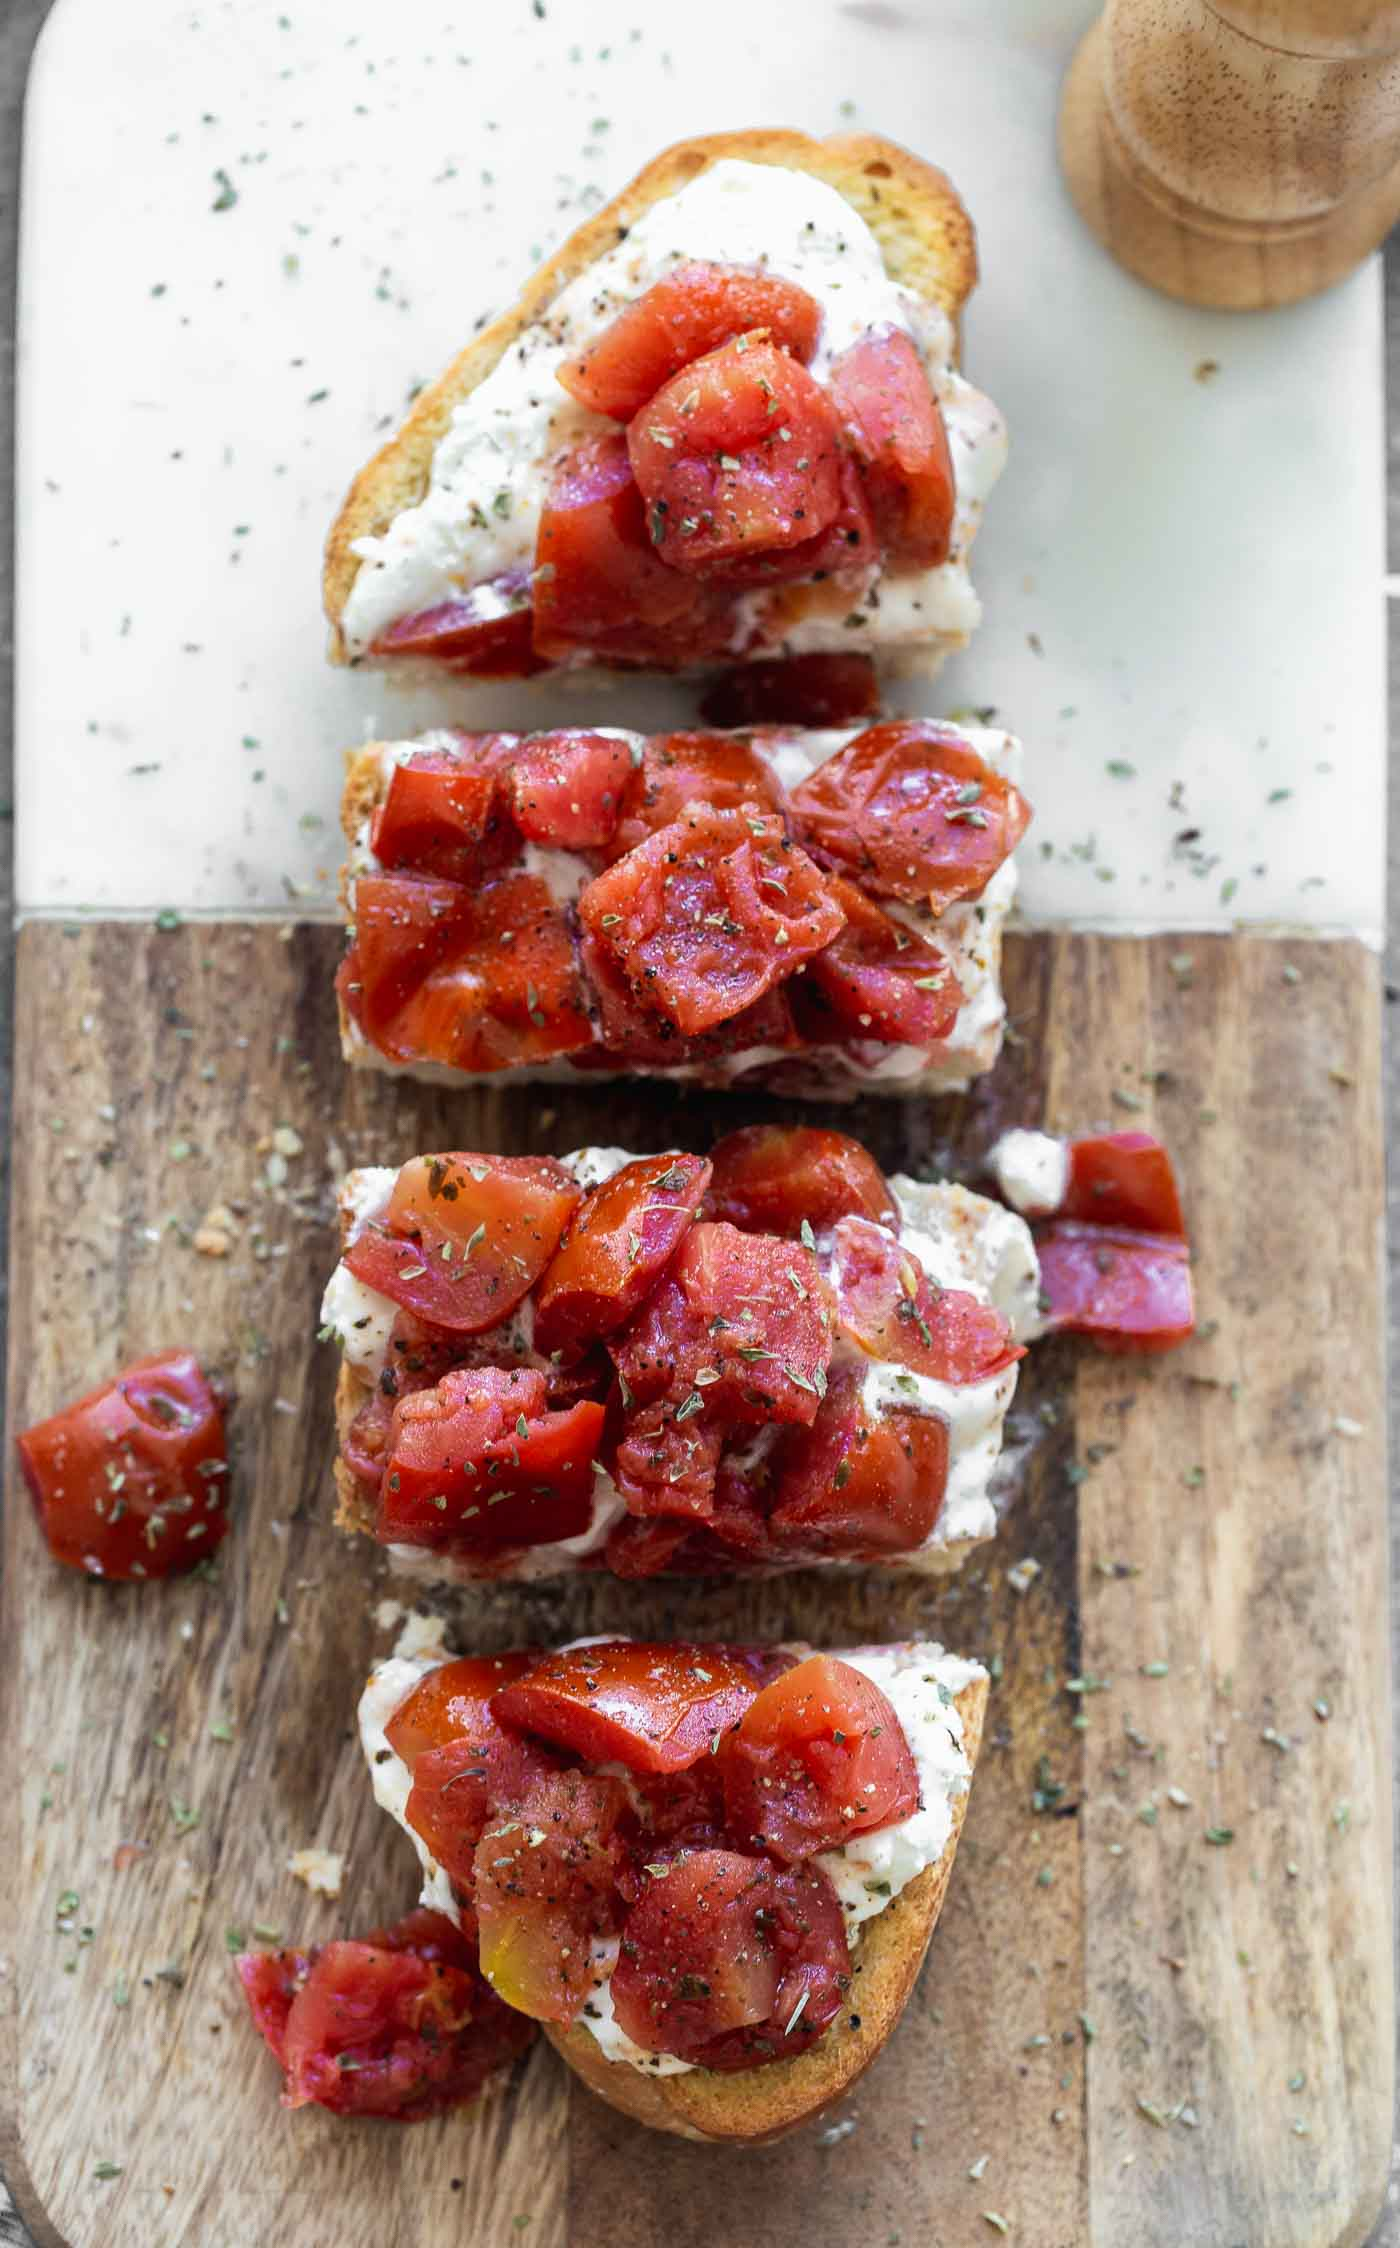 rispy French bread halves are seasoned with salt and pepper and baked until golden and crisp. They're brushed with garlic, then smothered with creamy whipped ricotta and topped with simply seasoned tomatoes. Serve with a crisp salad or as an appetizer!